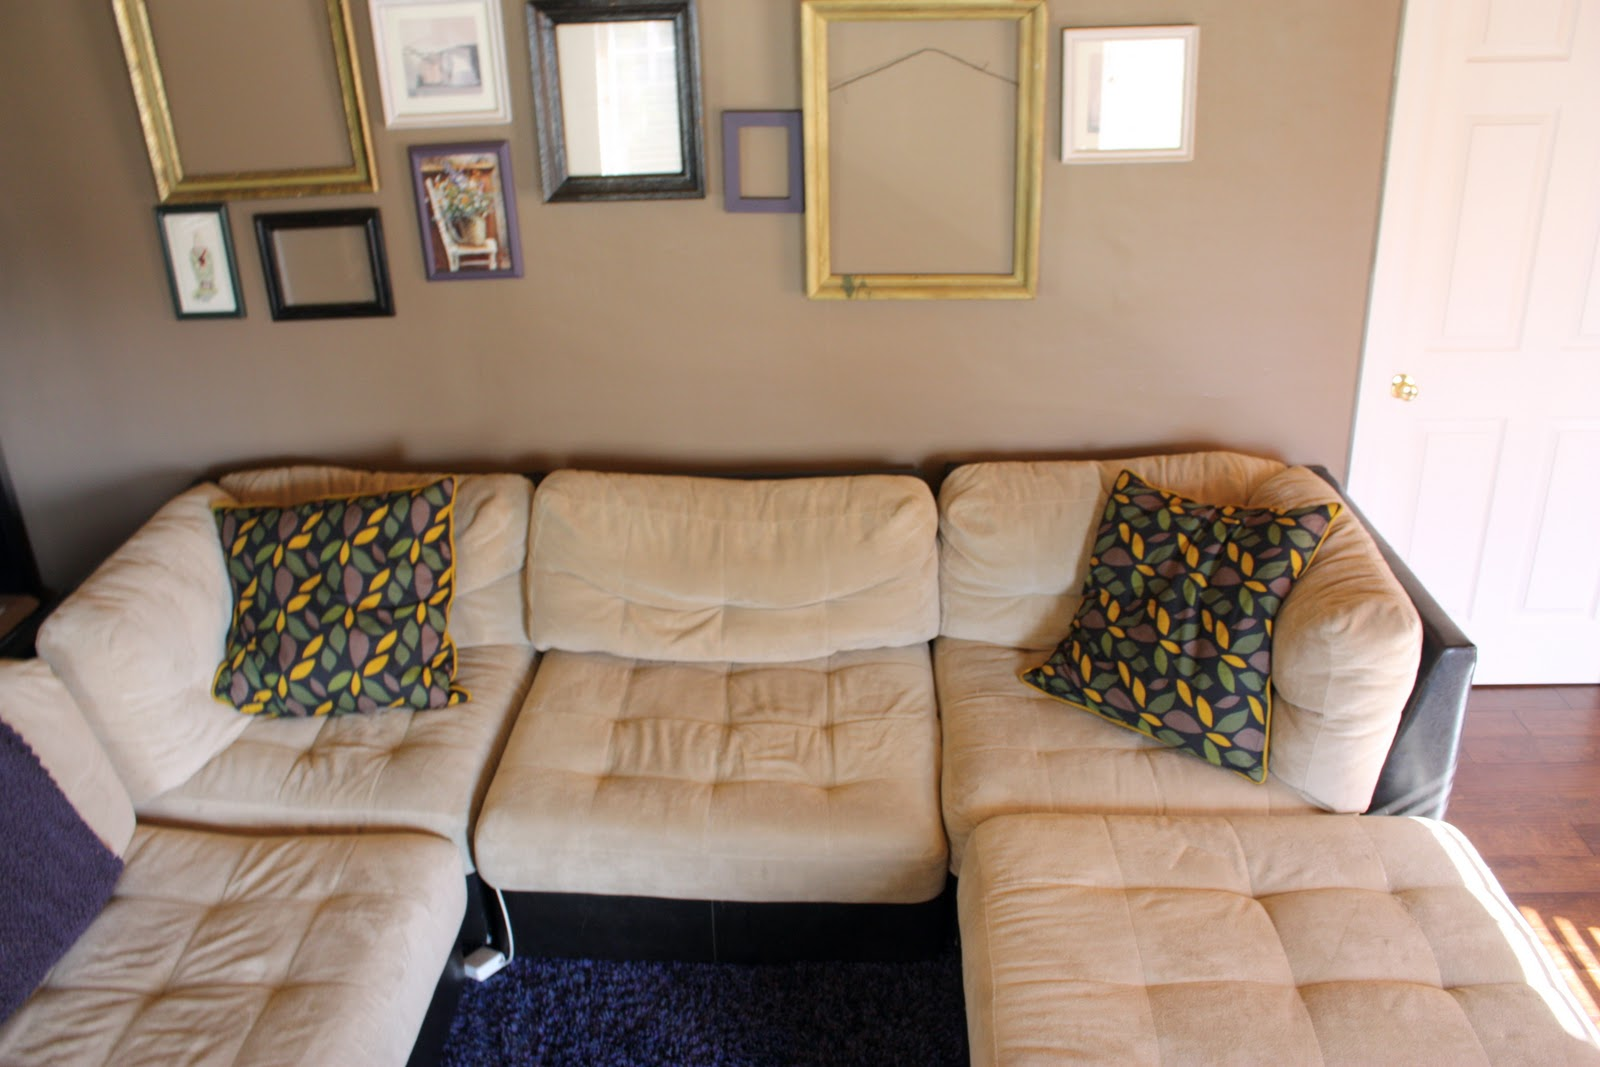 The Couch Isnt New. We Bought That Two Summers Ago From Mor Furniture. It  Was The Display Model And We Did Get A Good Deal On It And It Is Extremely  Comfy, ...